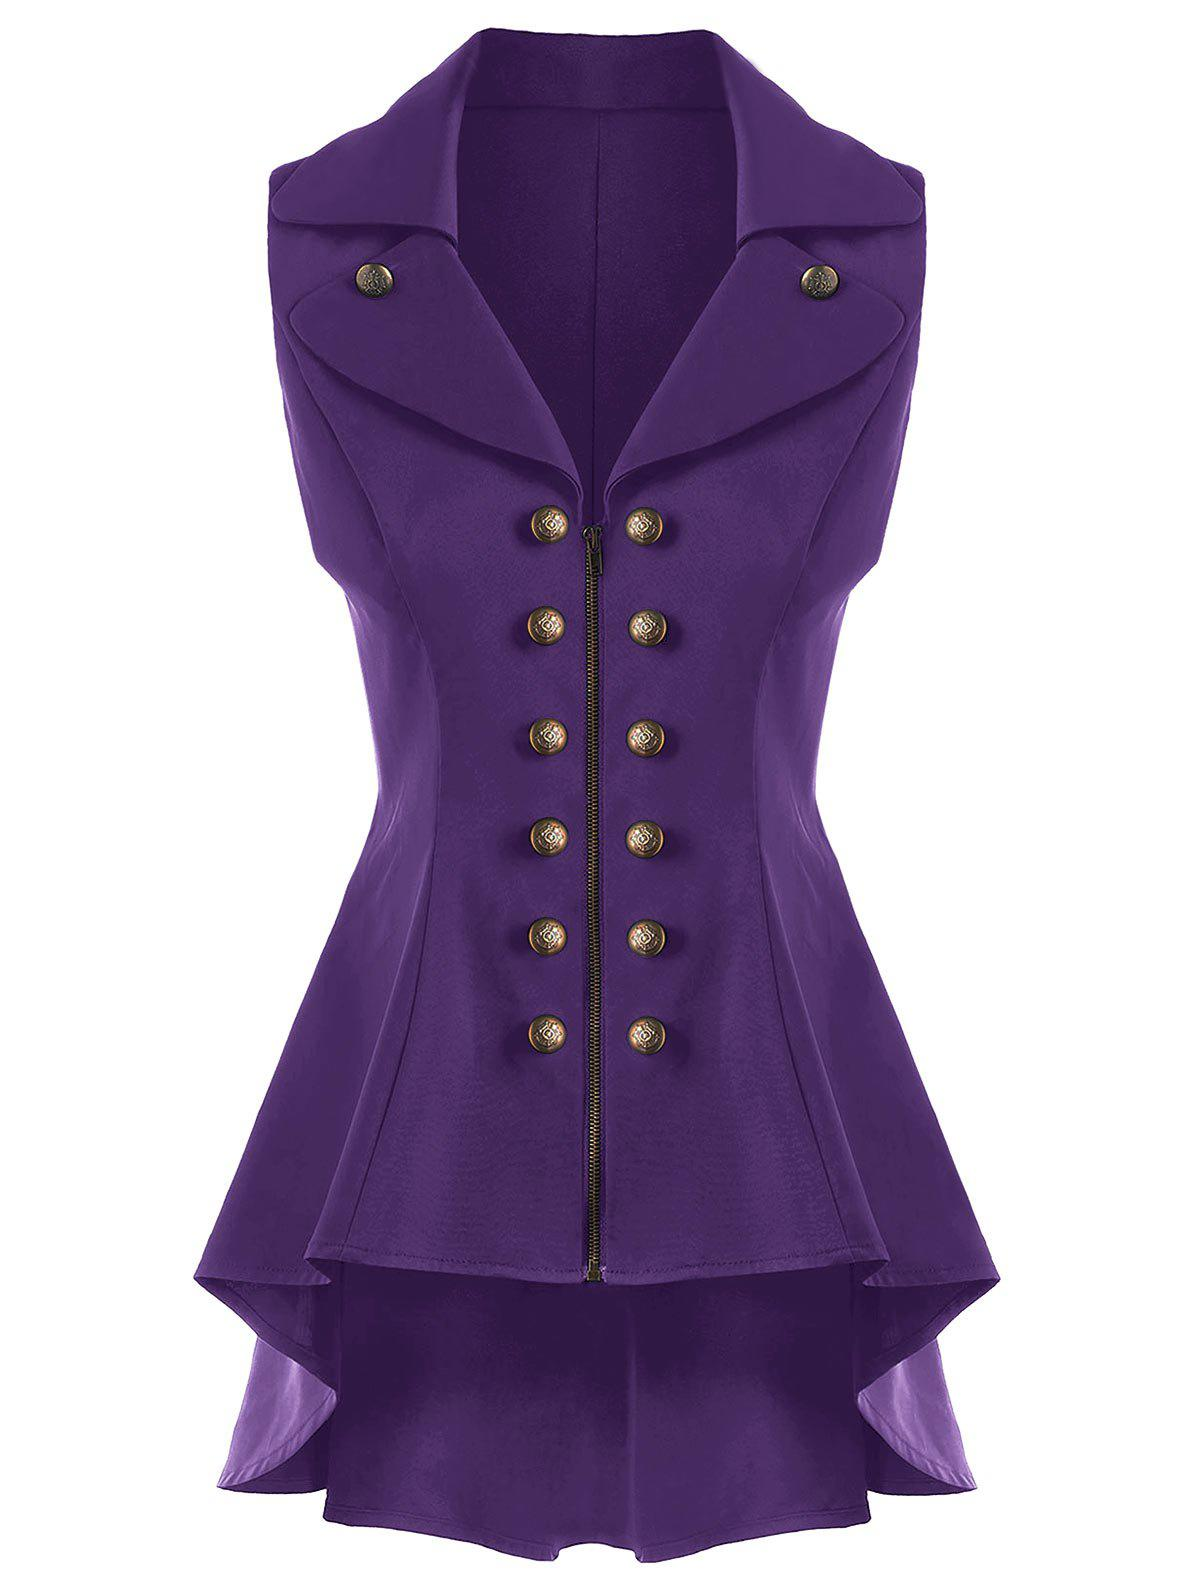 Double Breast Lapel High Low Dressy Waistcoat - PURPLE 2XL